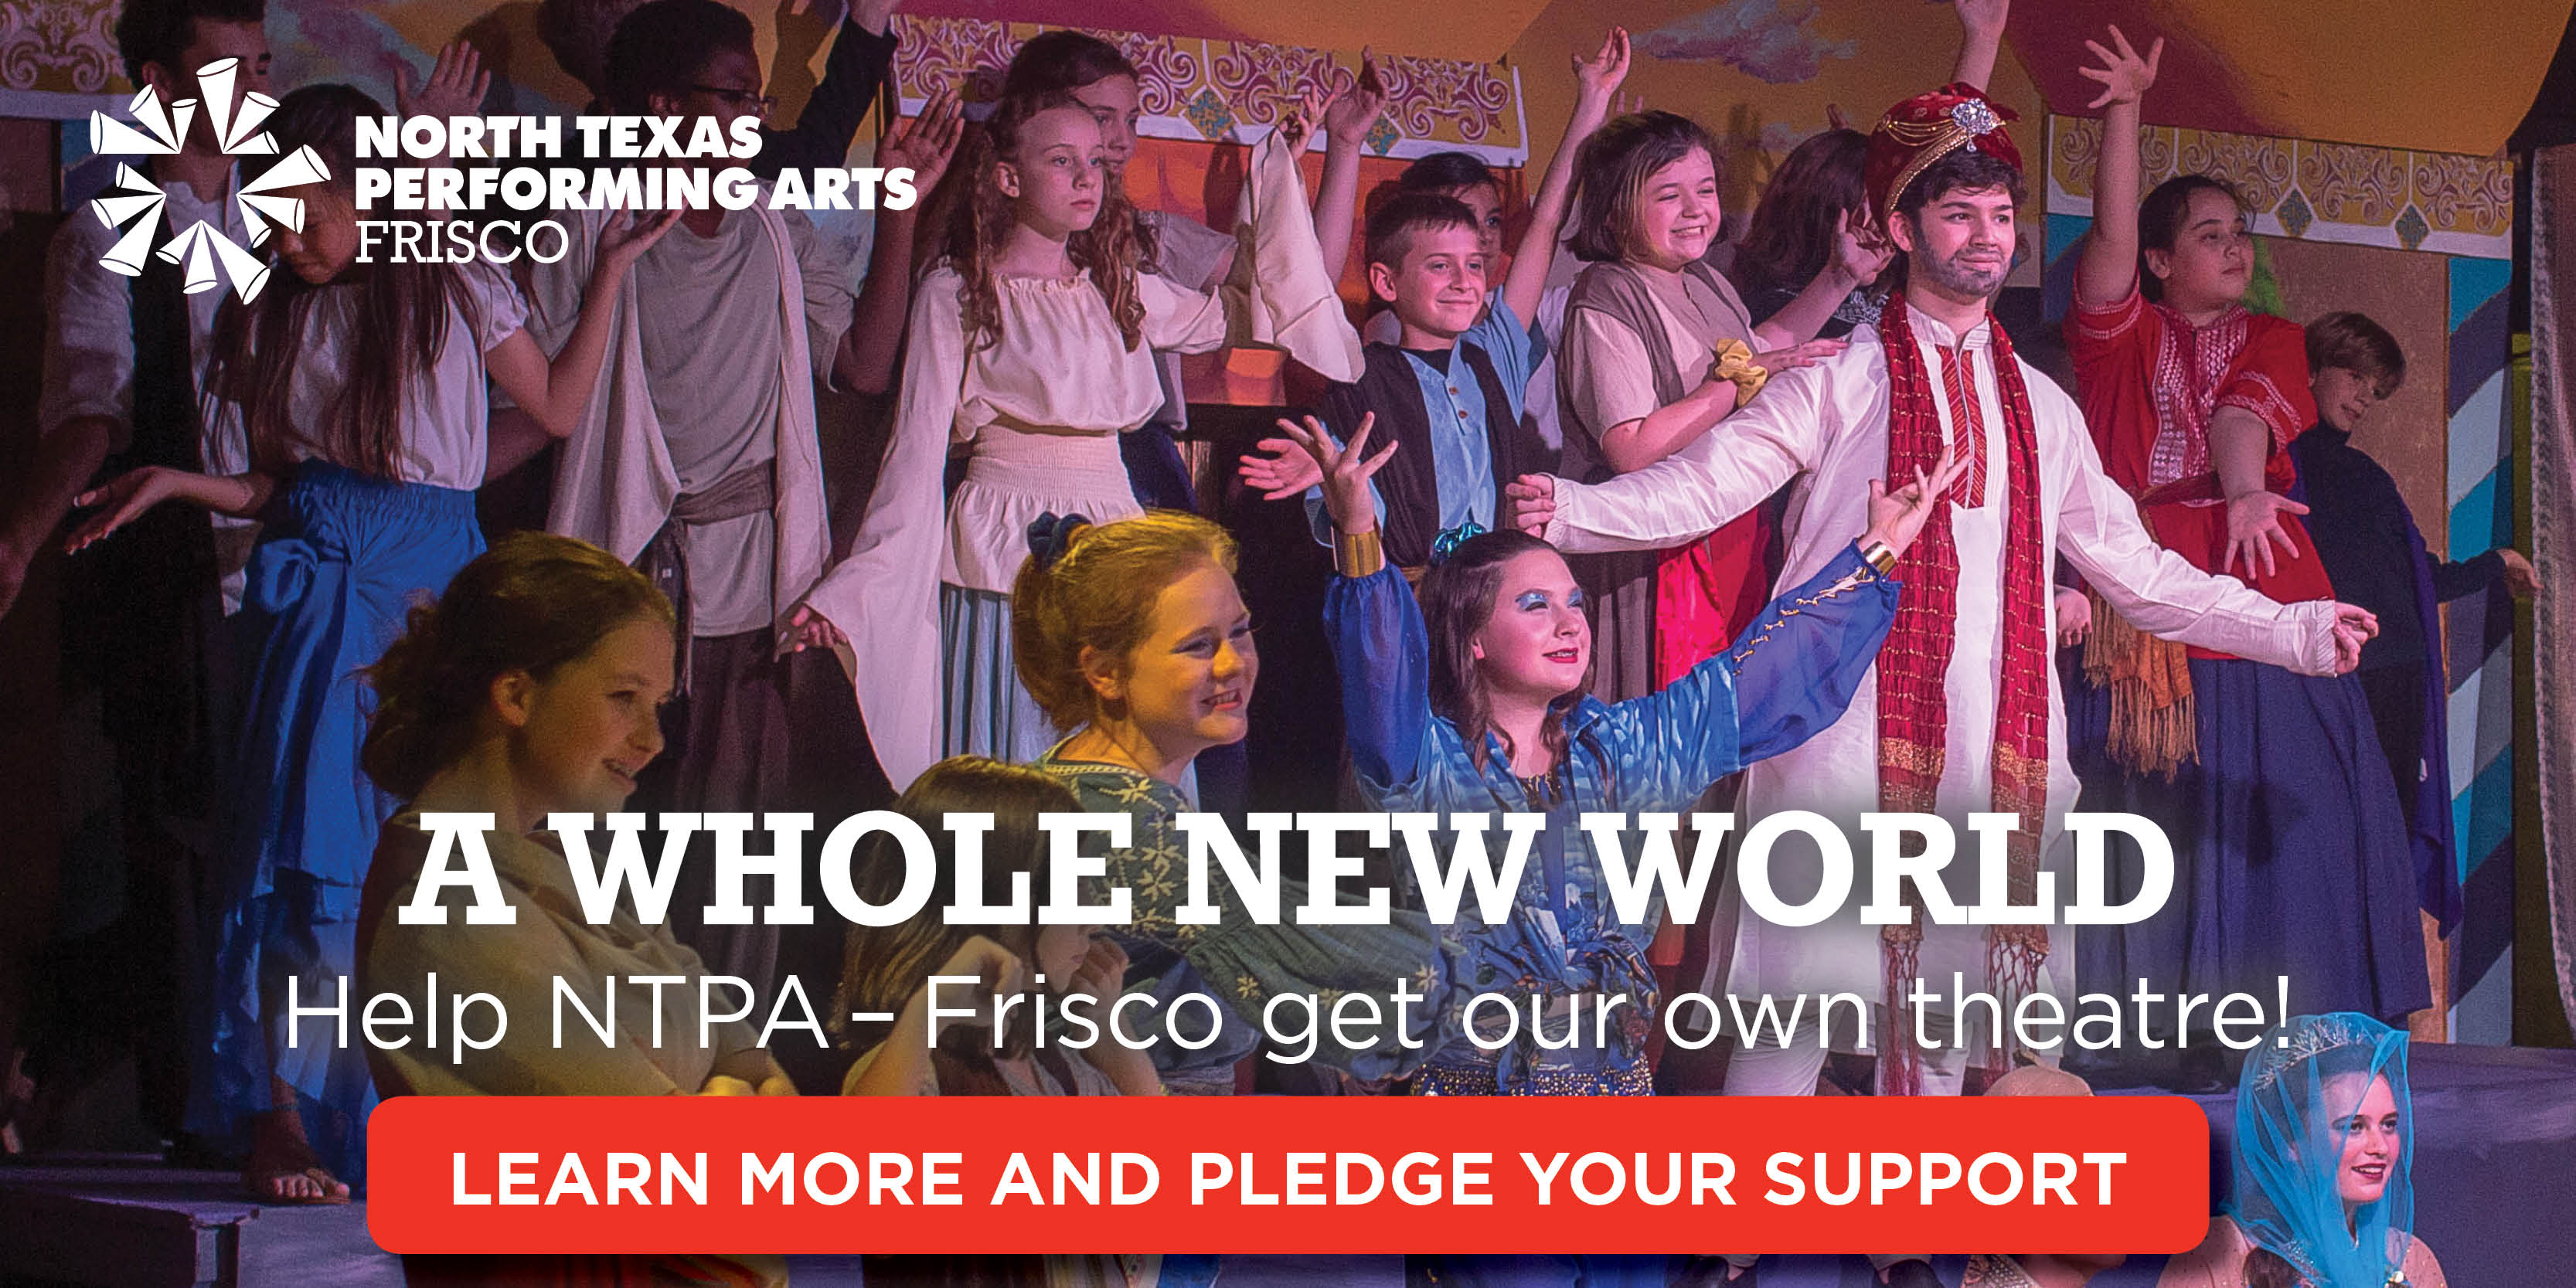 Support NTPA Frisco - Learn more and pledge your support